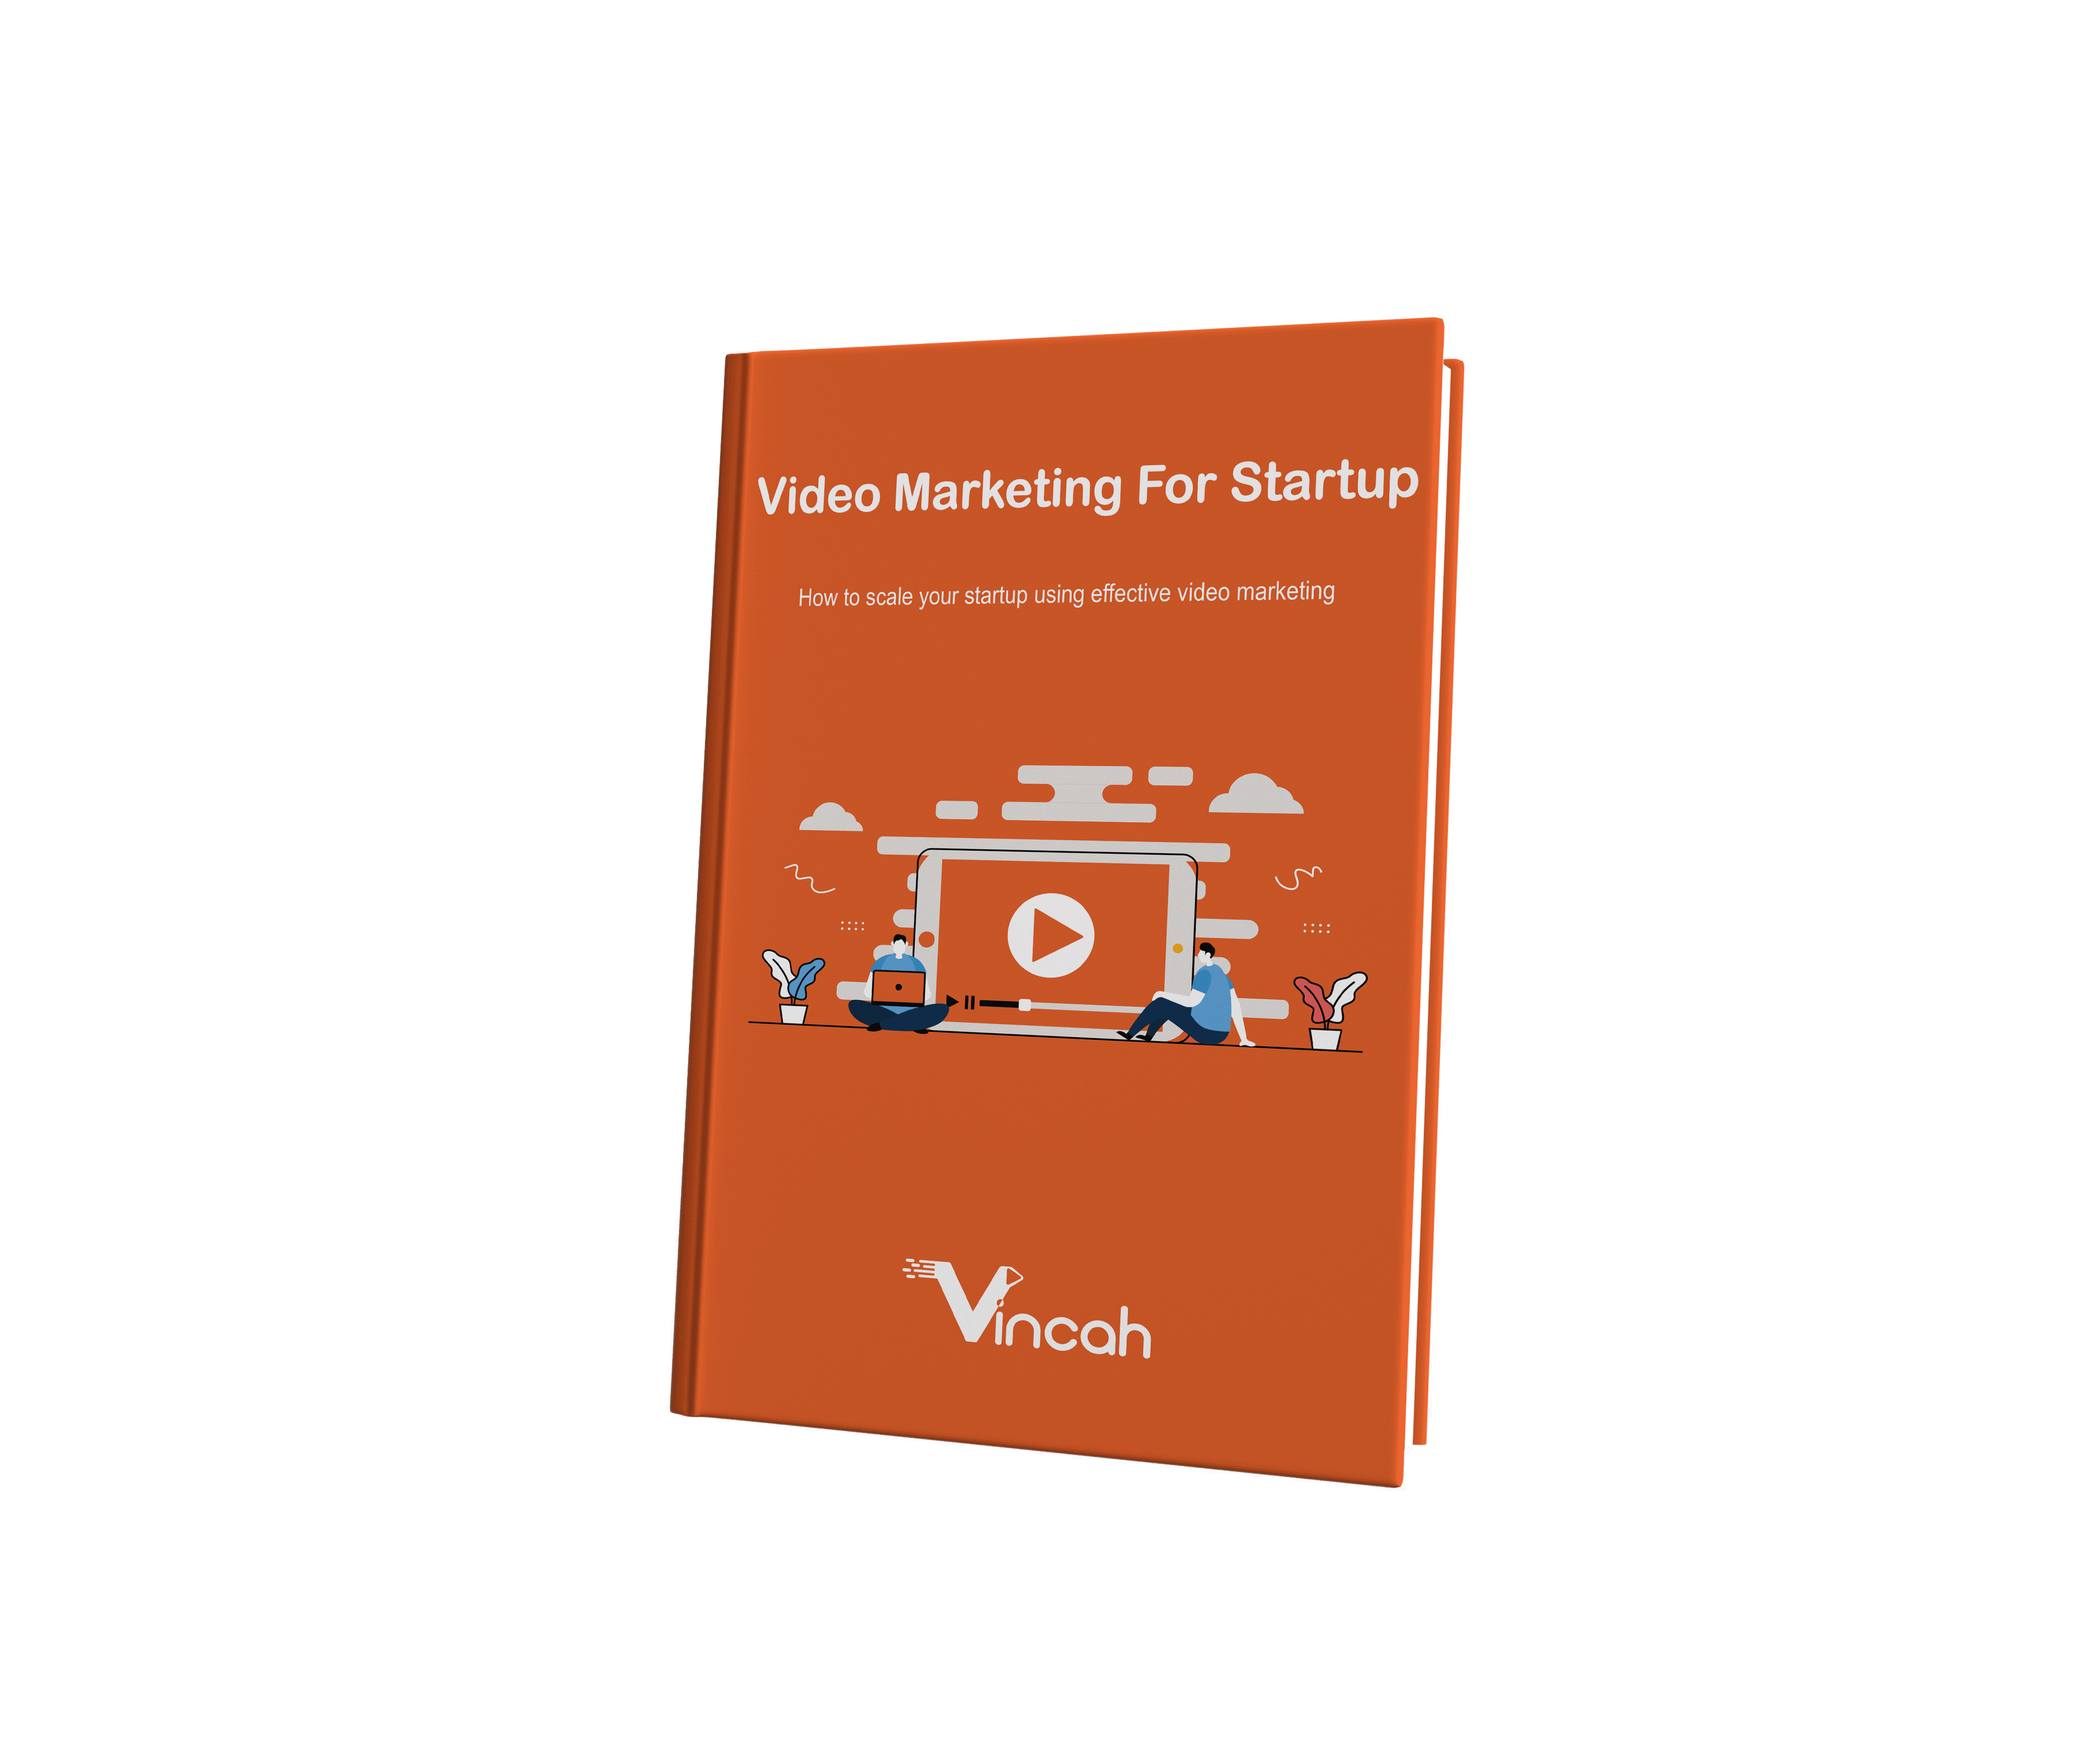 Front_View_Book_Cover_Mockup-3